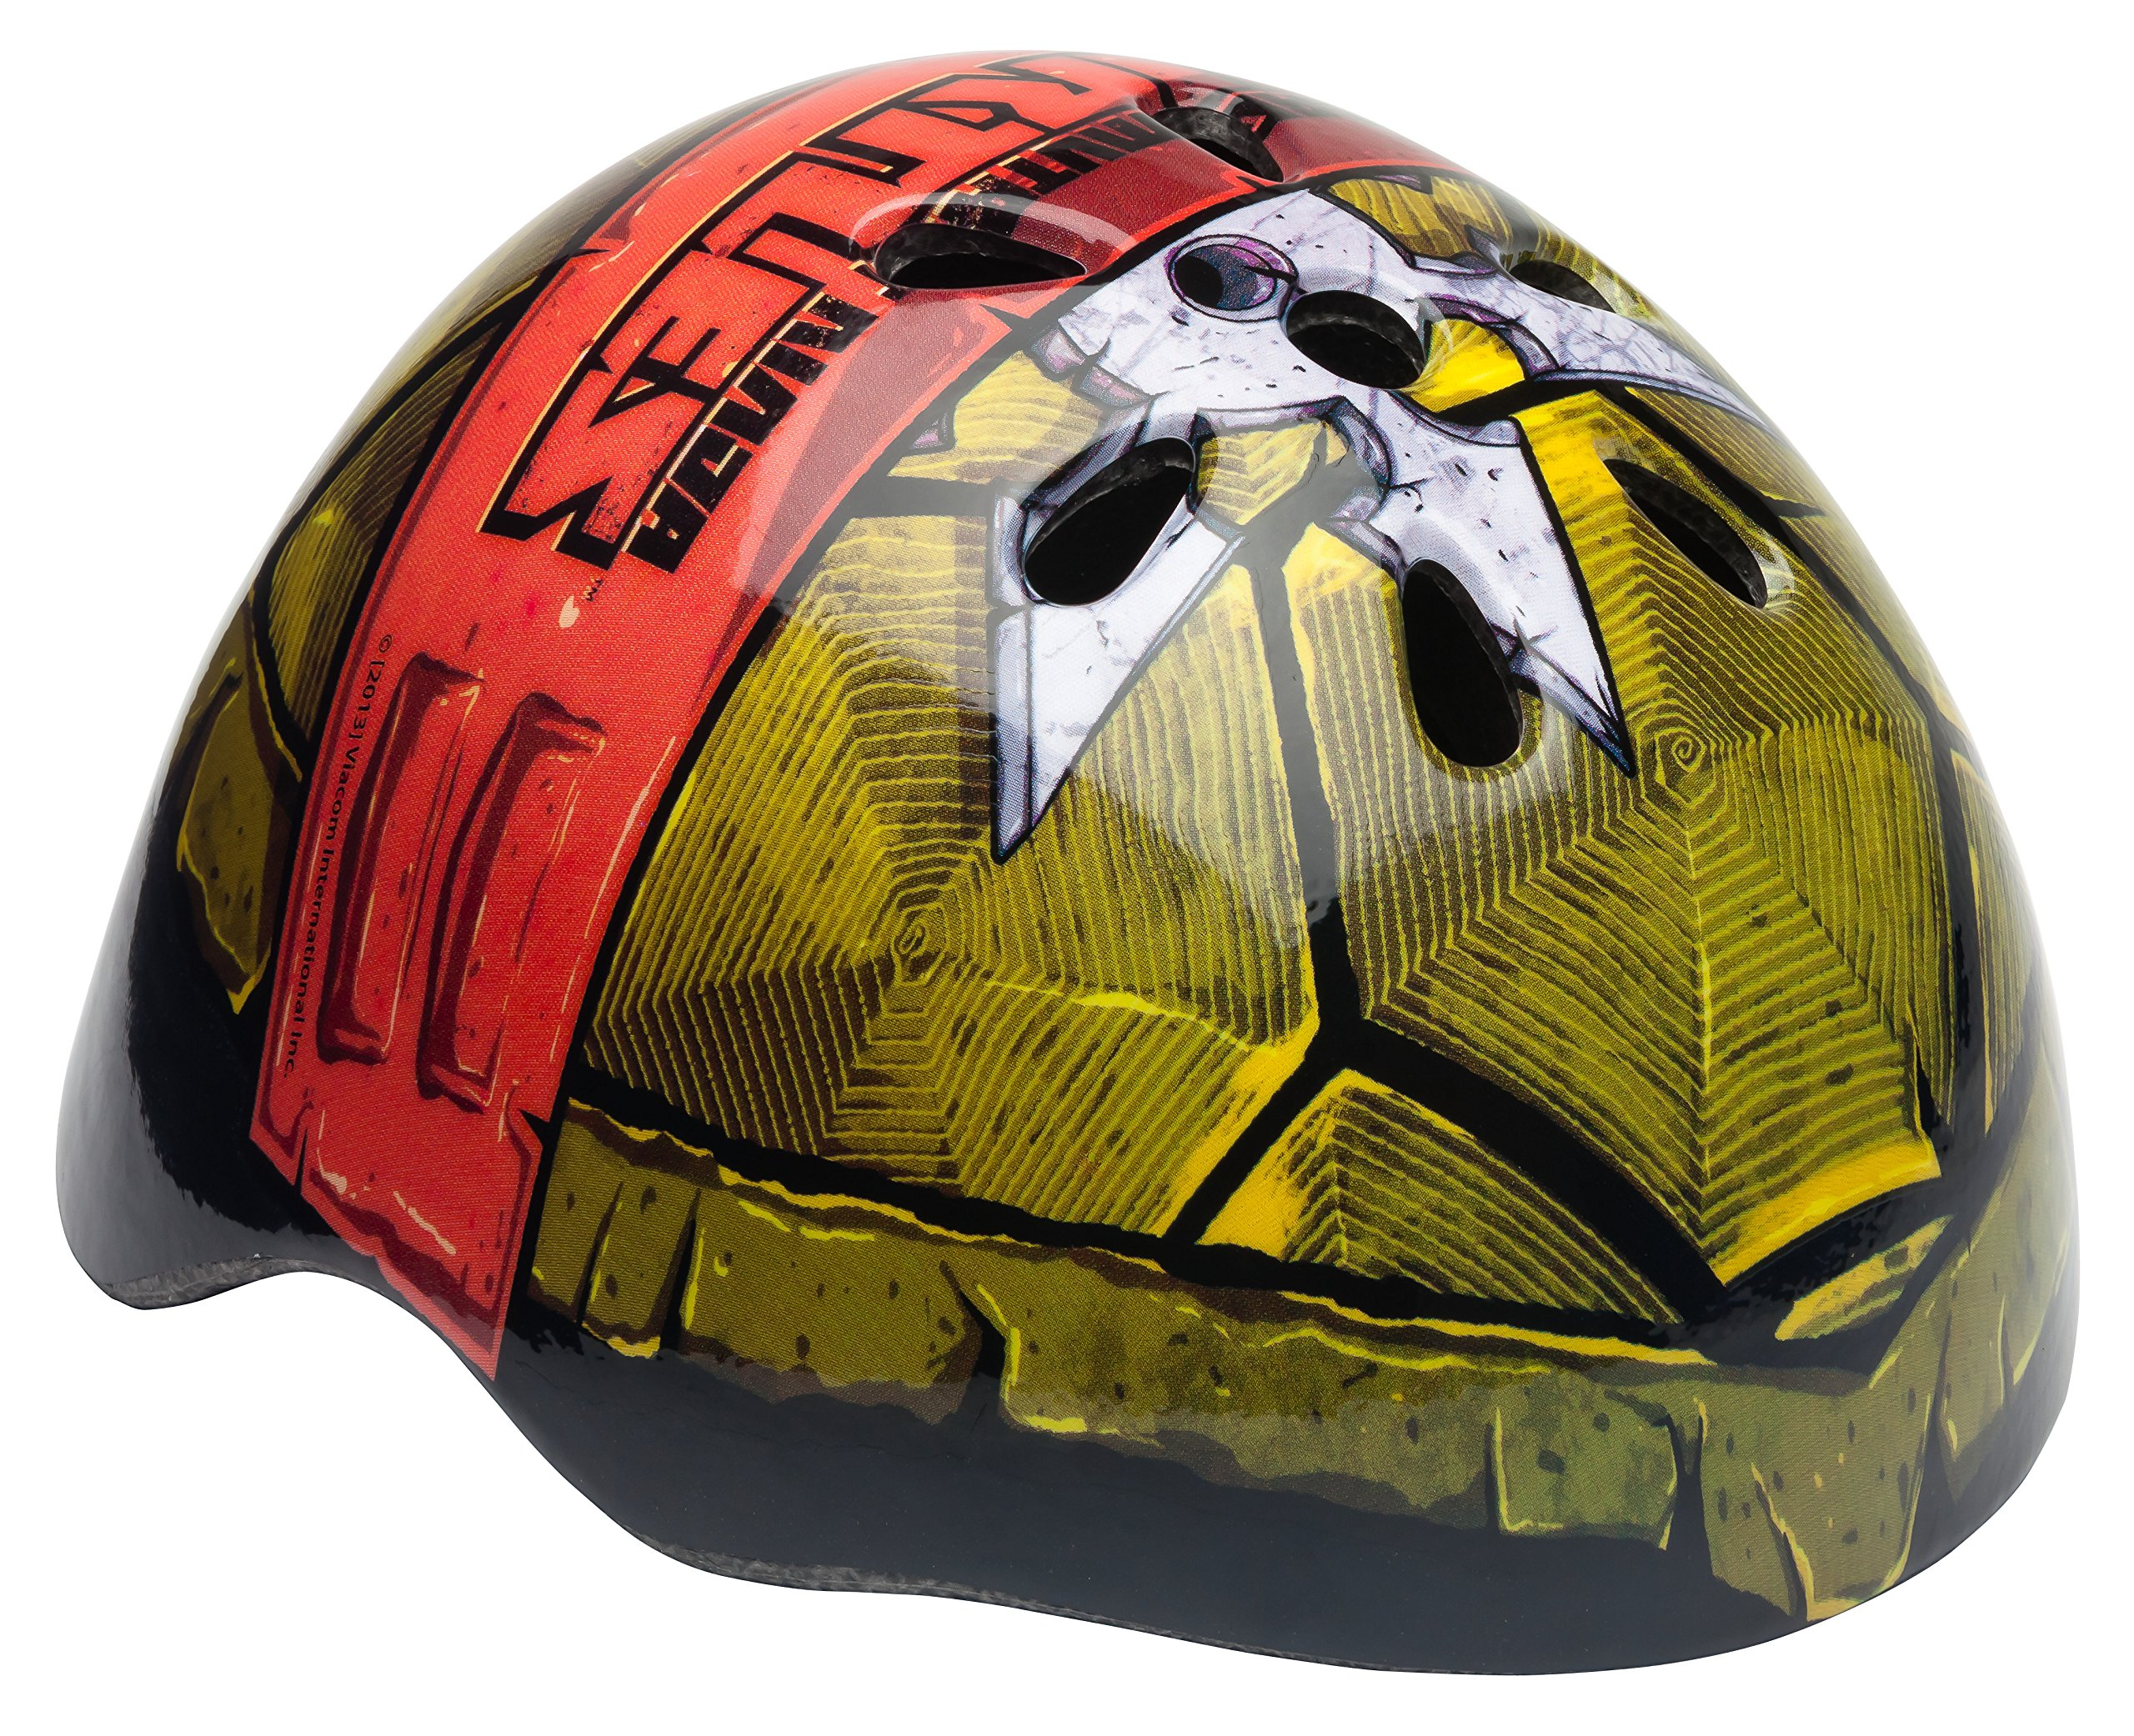 Nickelodeon Teenage Mutant Ninja Turtles Child Helmet by Nickelodeon